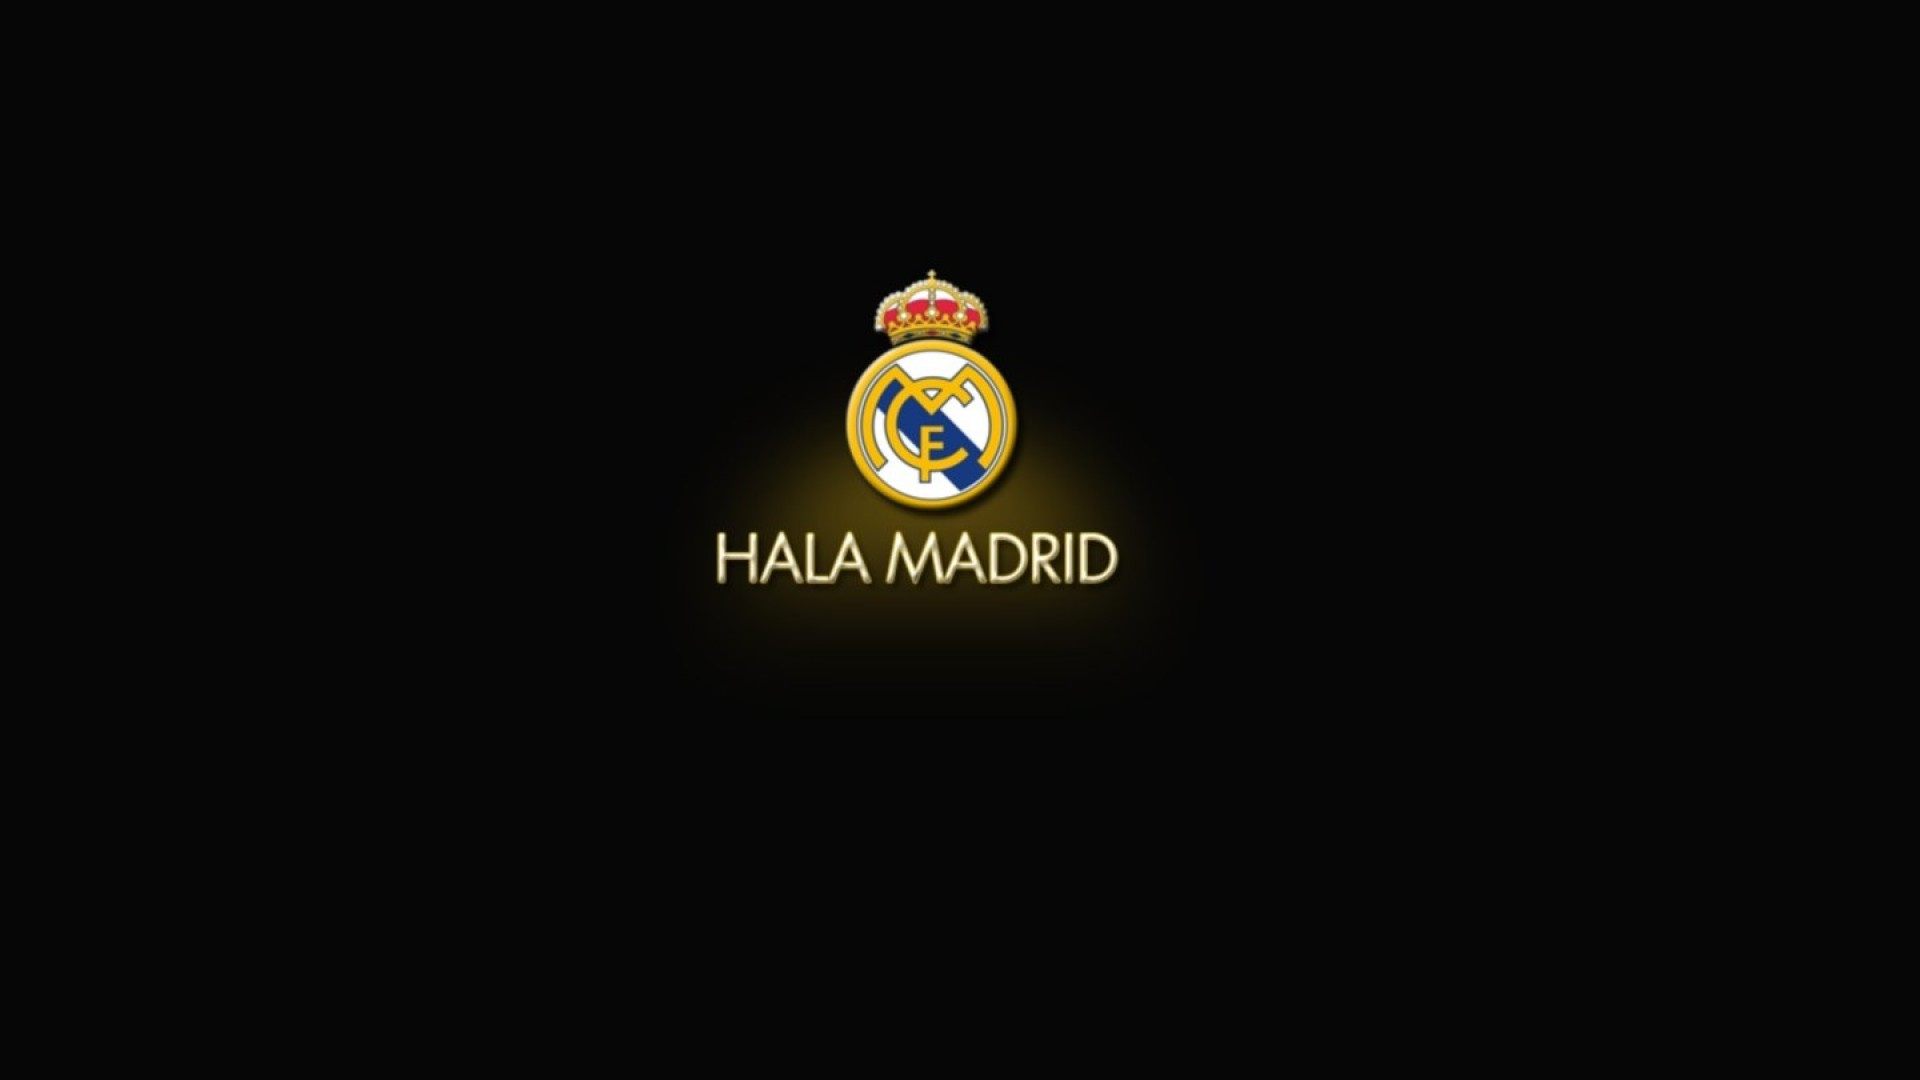 1920x1080 Hala Madrid Picture Wallpaper Backgrounds